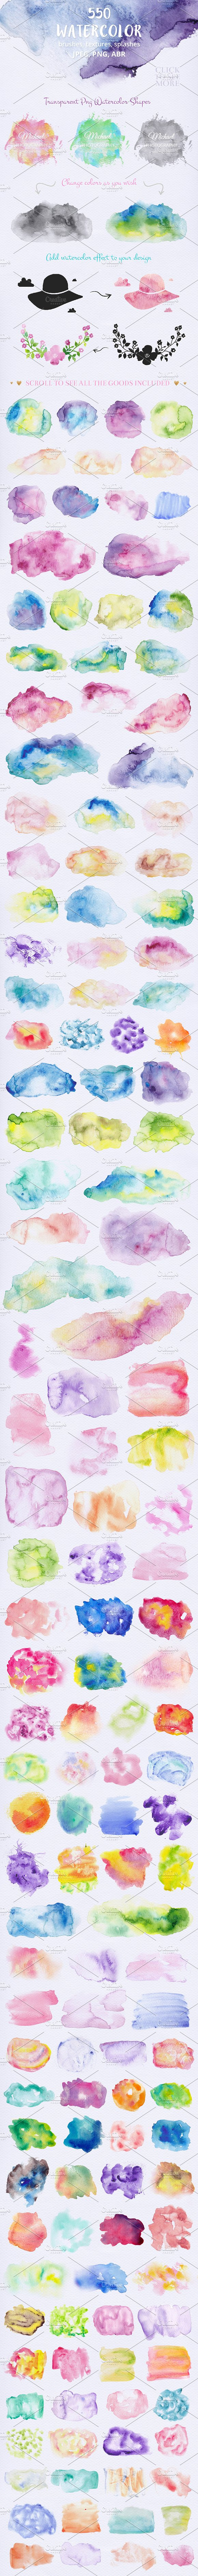 Watercolor Textures Bundle in Textures - product preview 1